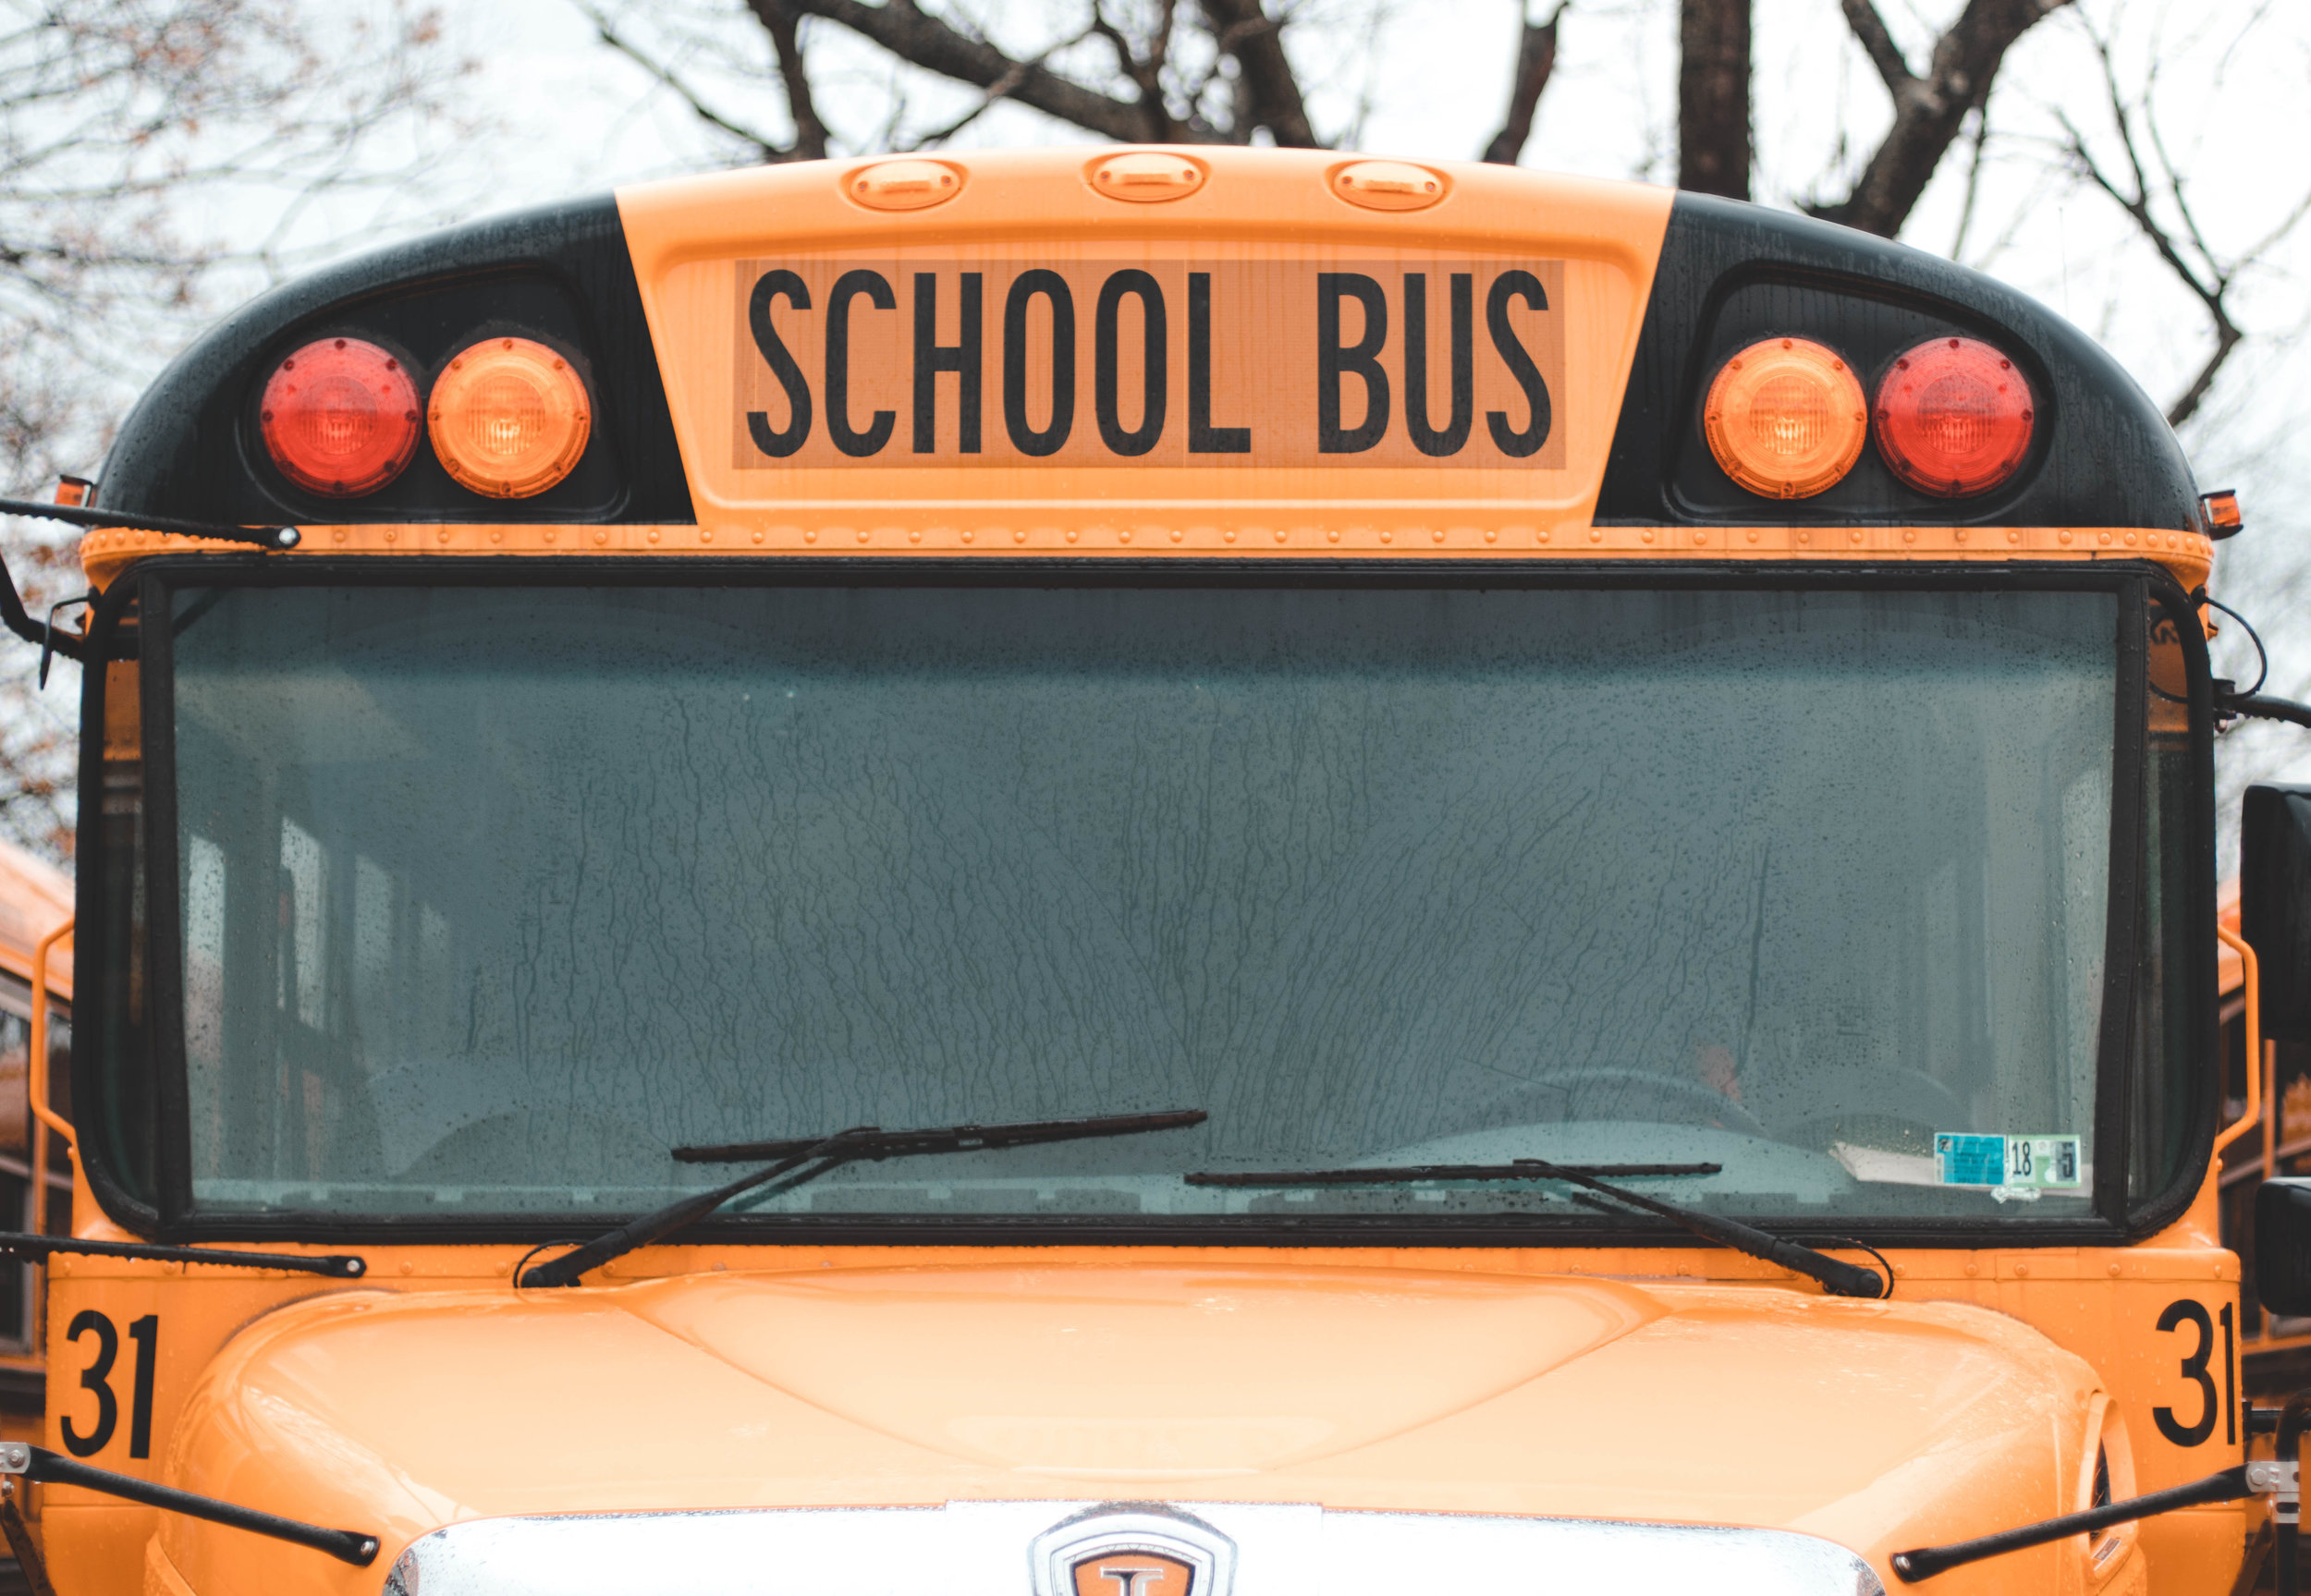 Busing Program - Some students lack reliable transportation to school or have to walk alone in the dark, cold morning.  Howe Community Resource Center provides a bus for these students so they have a safe, dependable way to school.  Since it's inception, absences have dropped dramatically and literacy and math scores have risen exponentially.